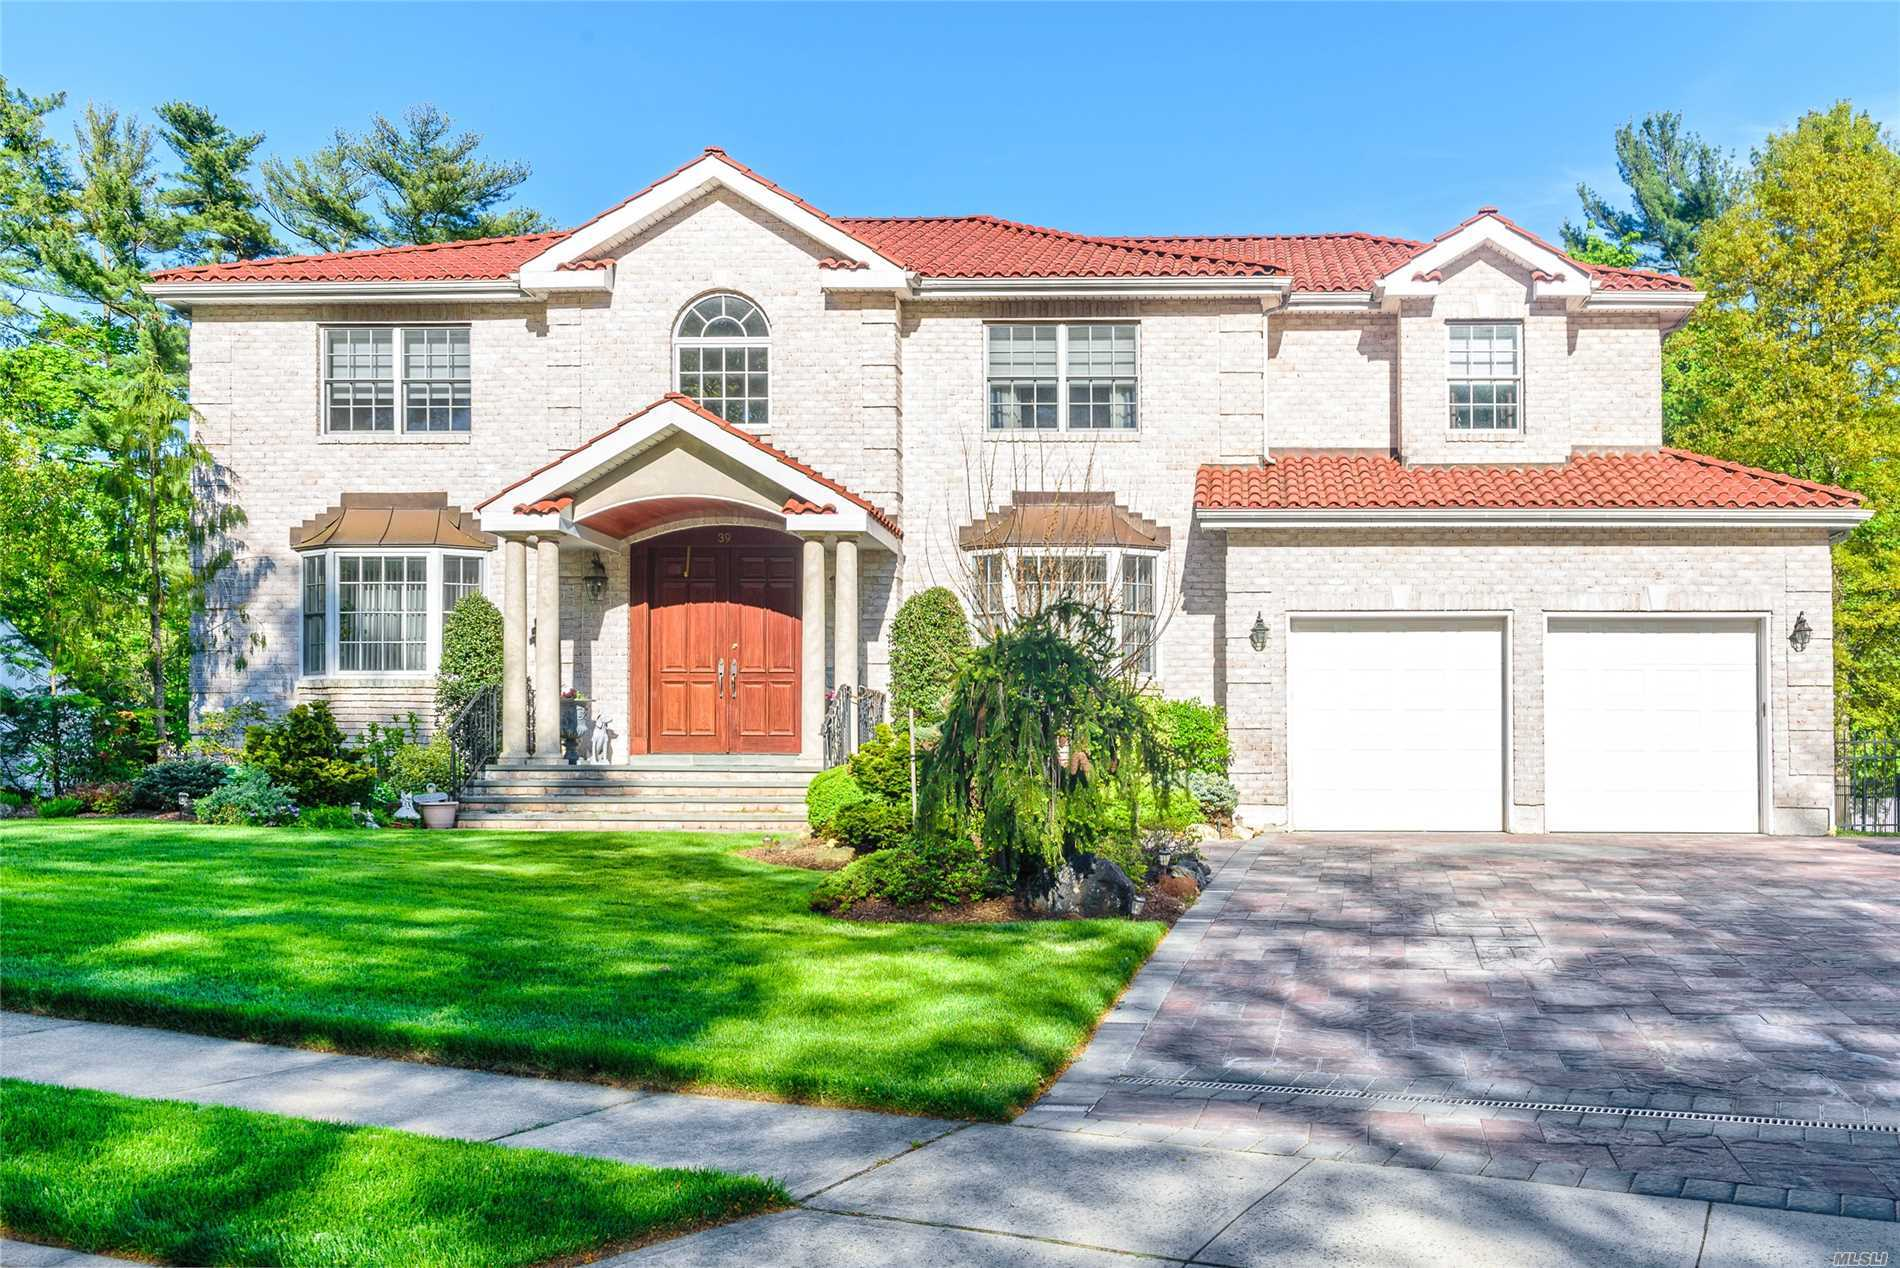 39 Sycamore Ln - Roslyn Heights, New York